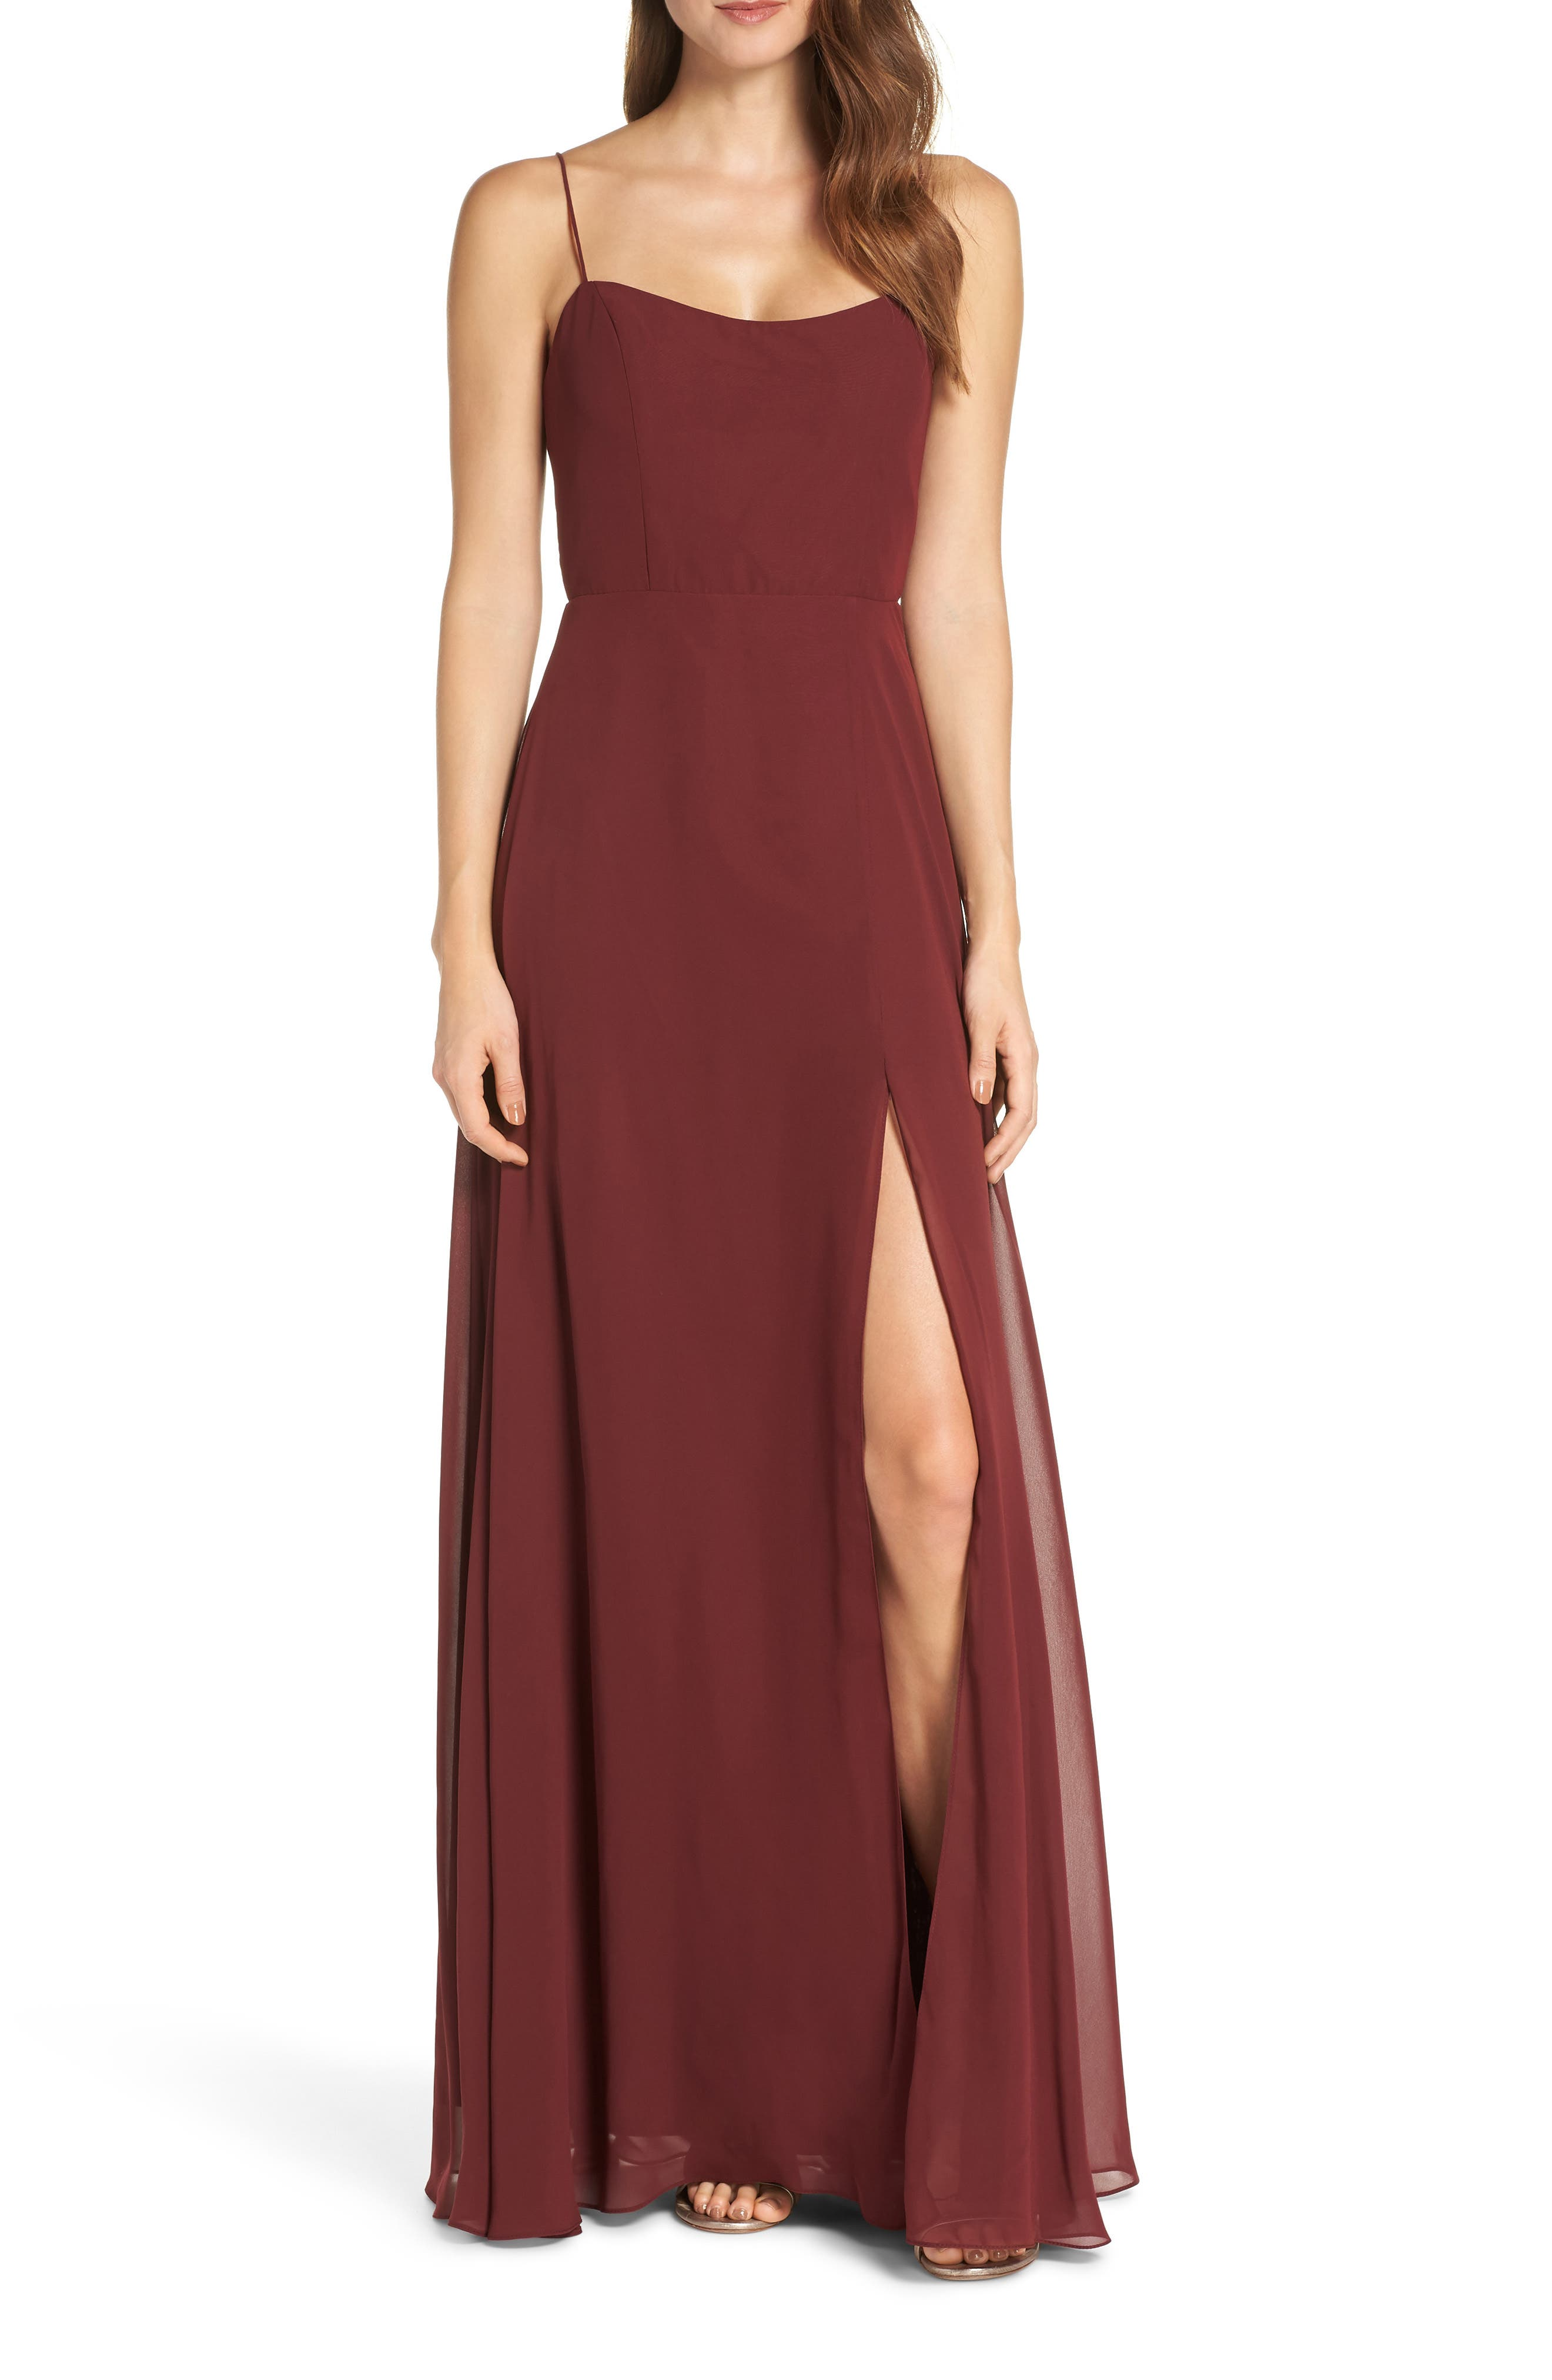 Jenny Yoo Kiara Bow Back Chiffon Evening Dress, Red